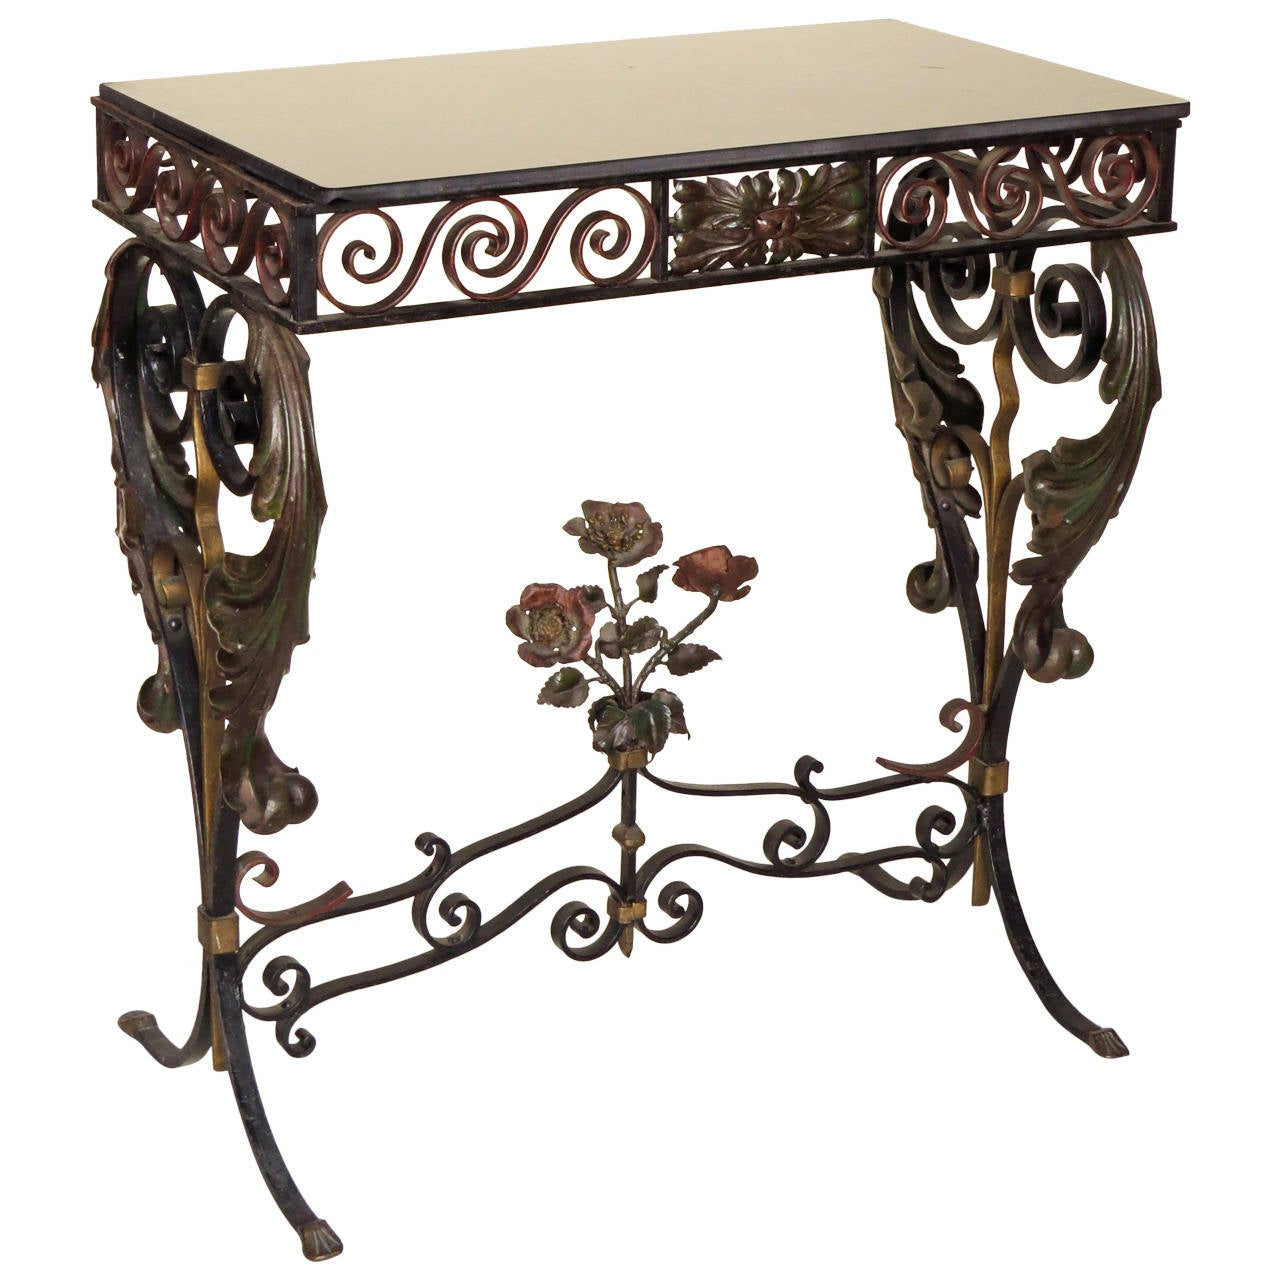 French wrought iron side table at 1stdibs for Wrought iron side table